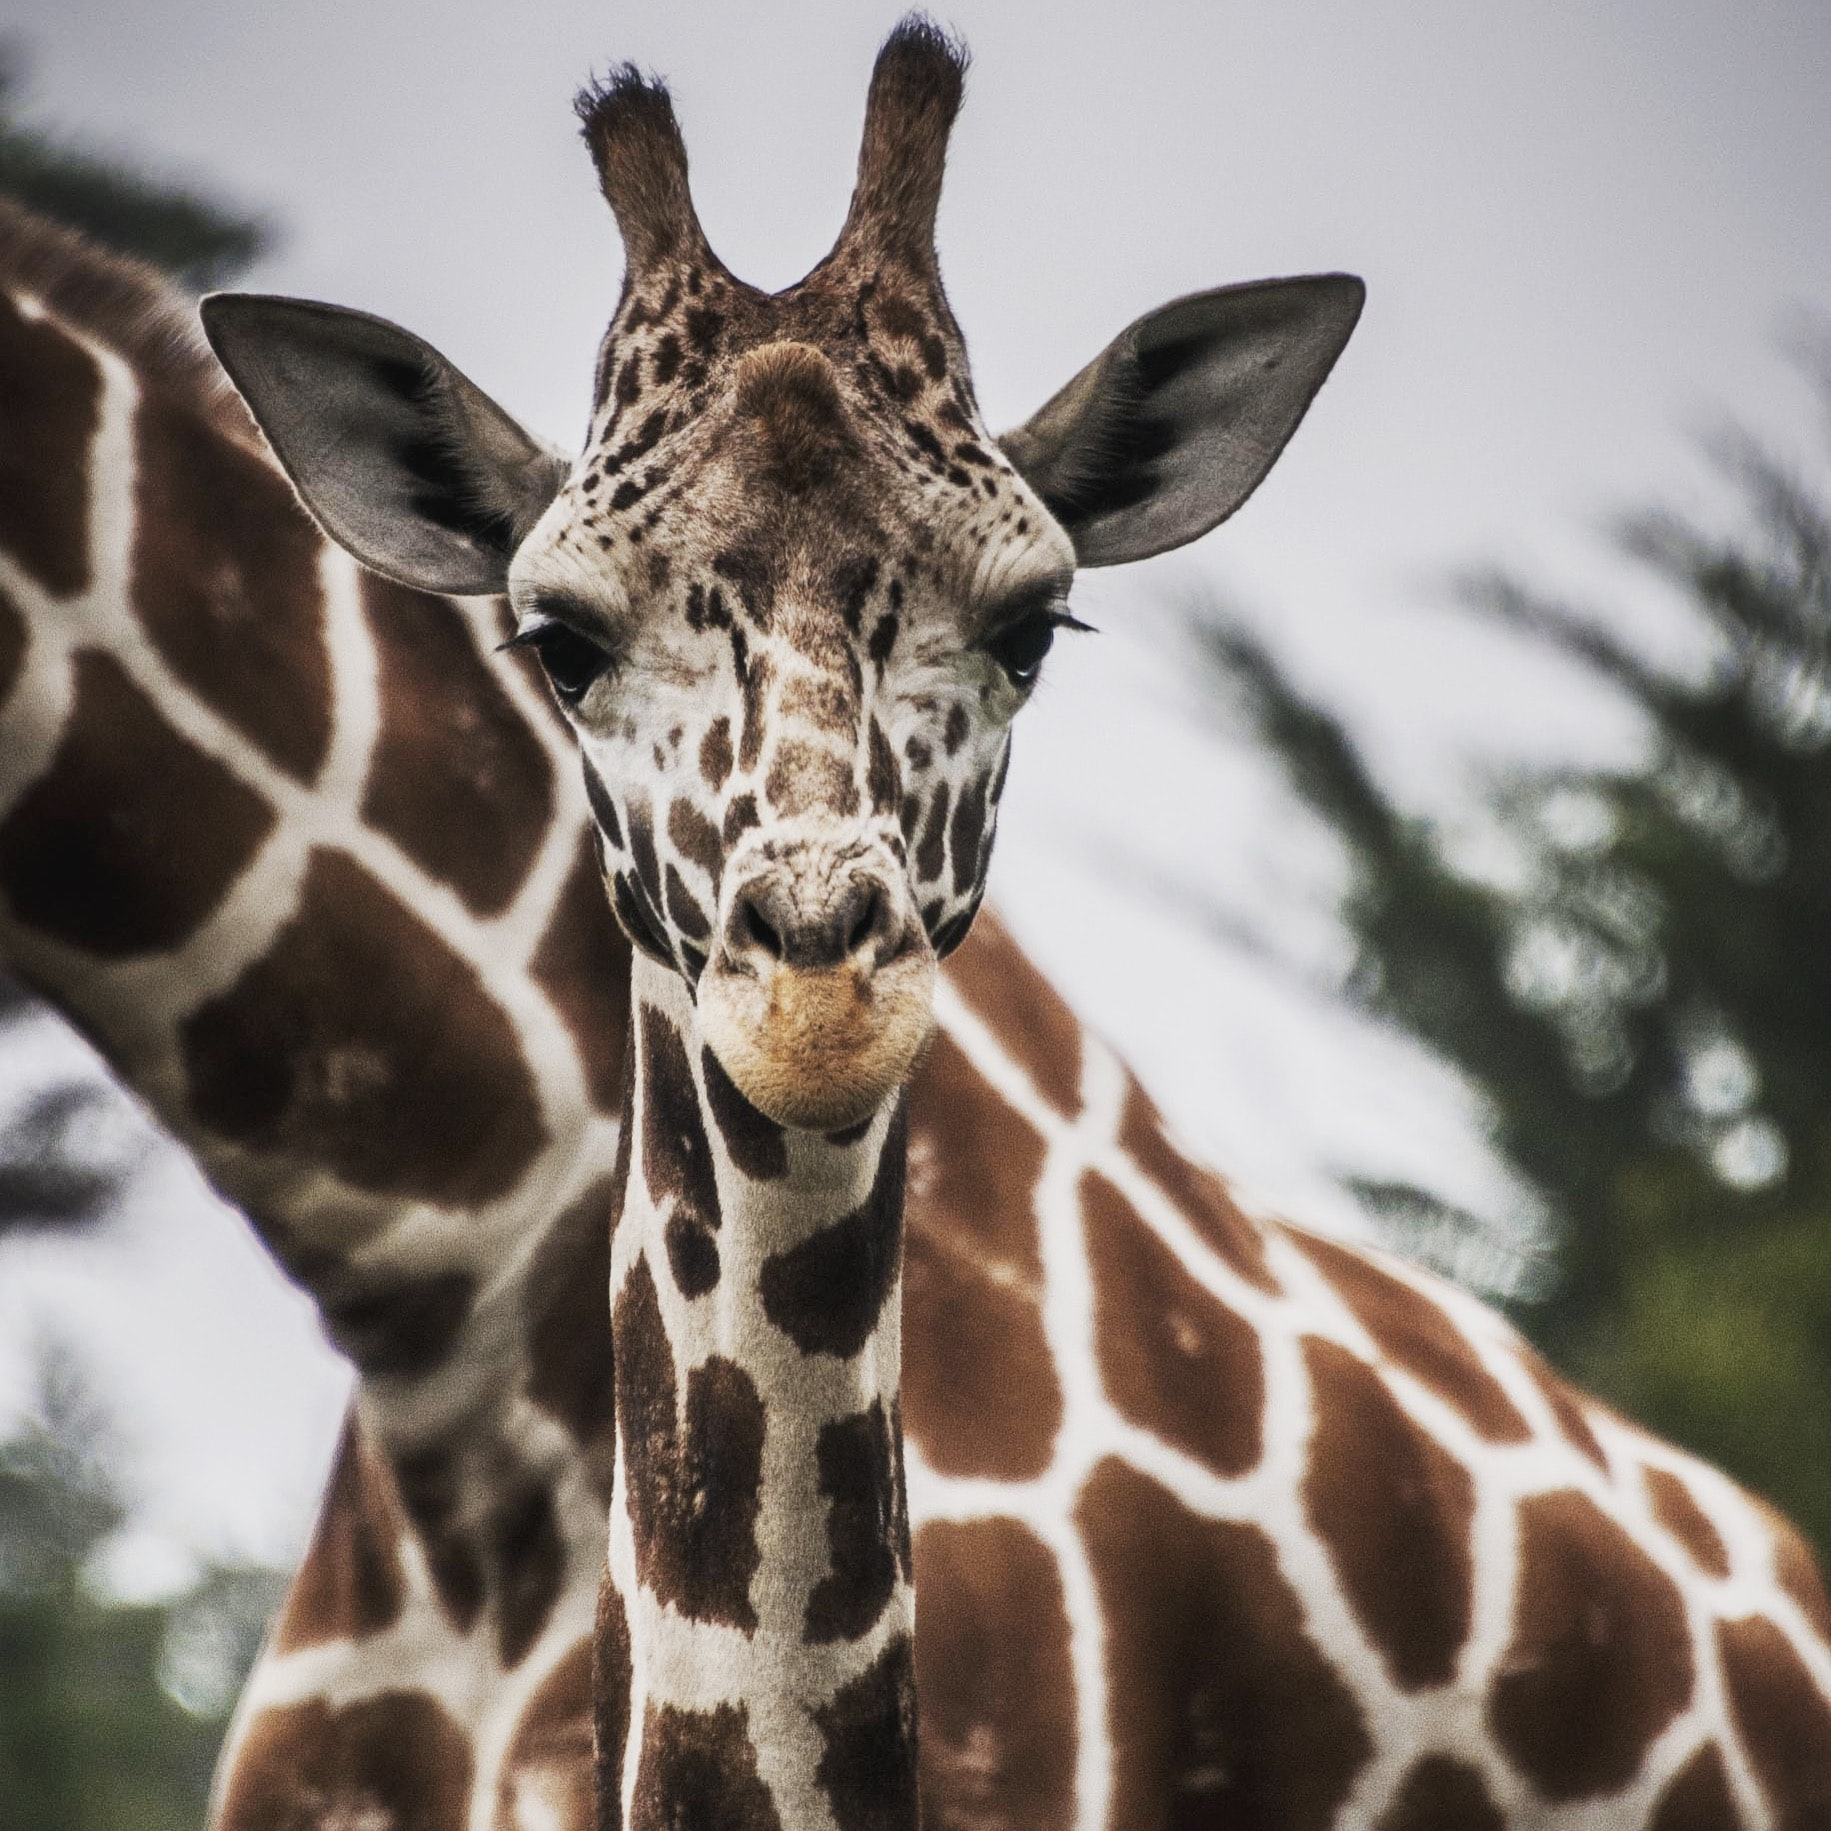 brown and white giraffe in closeup photography